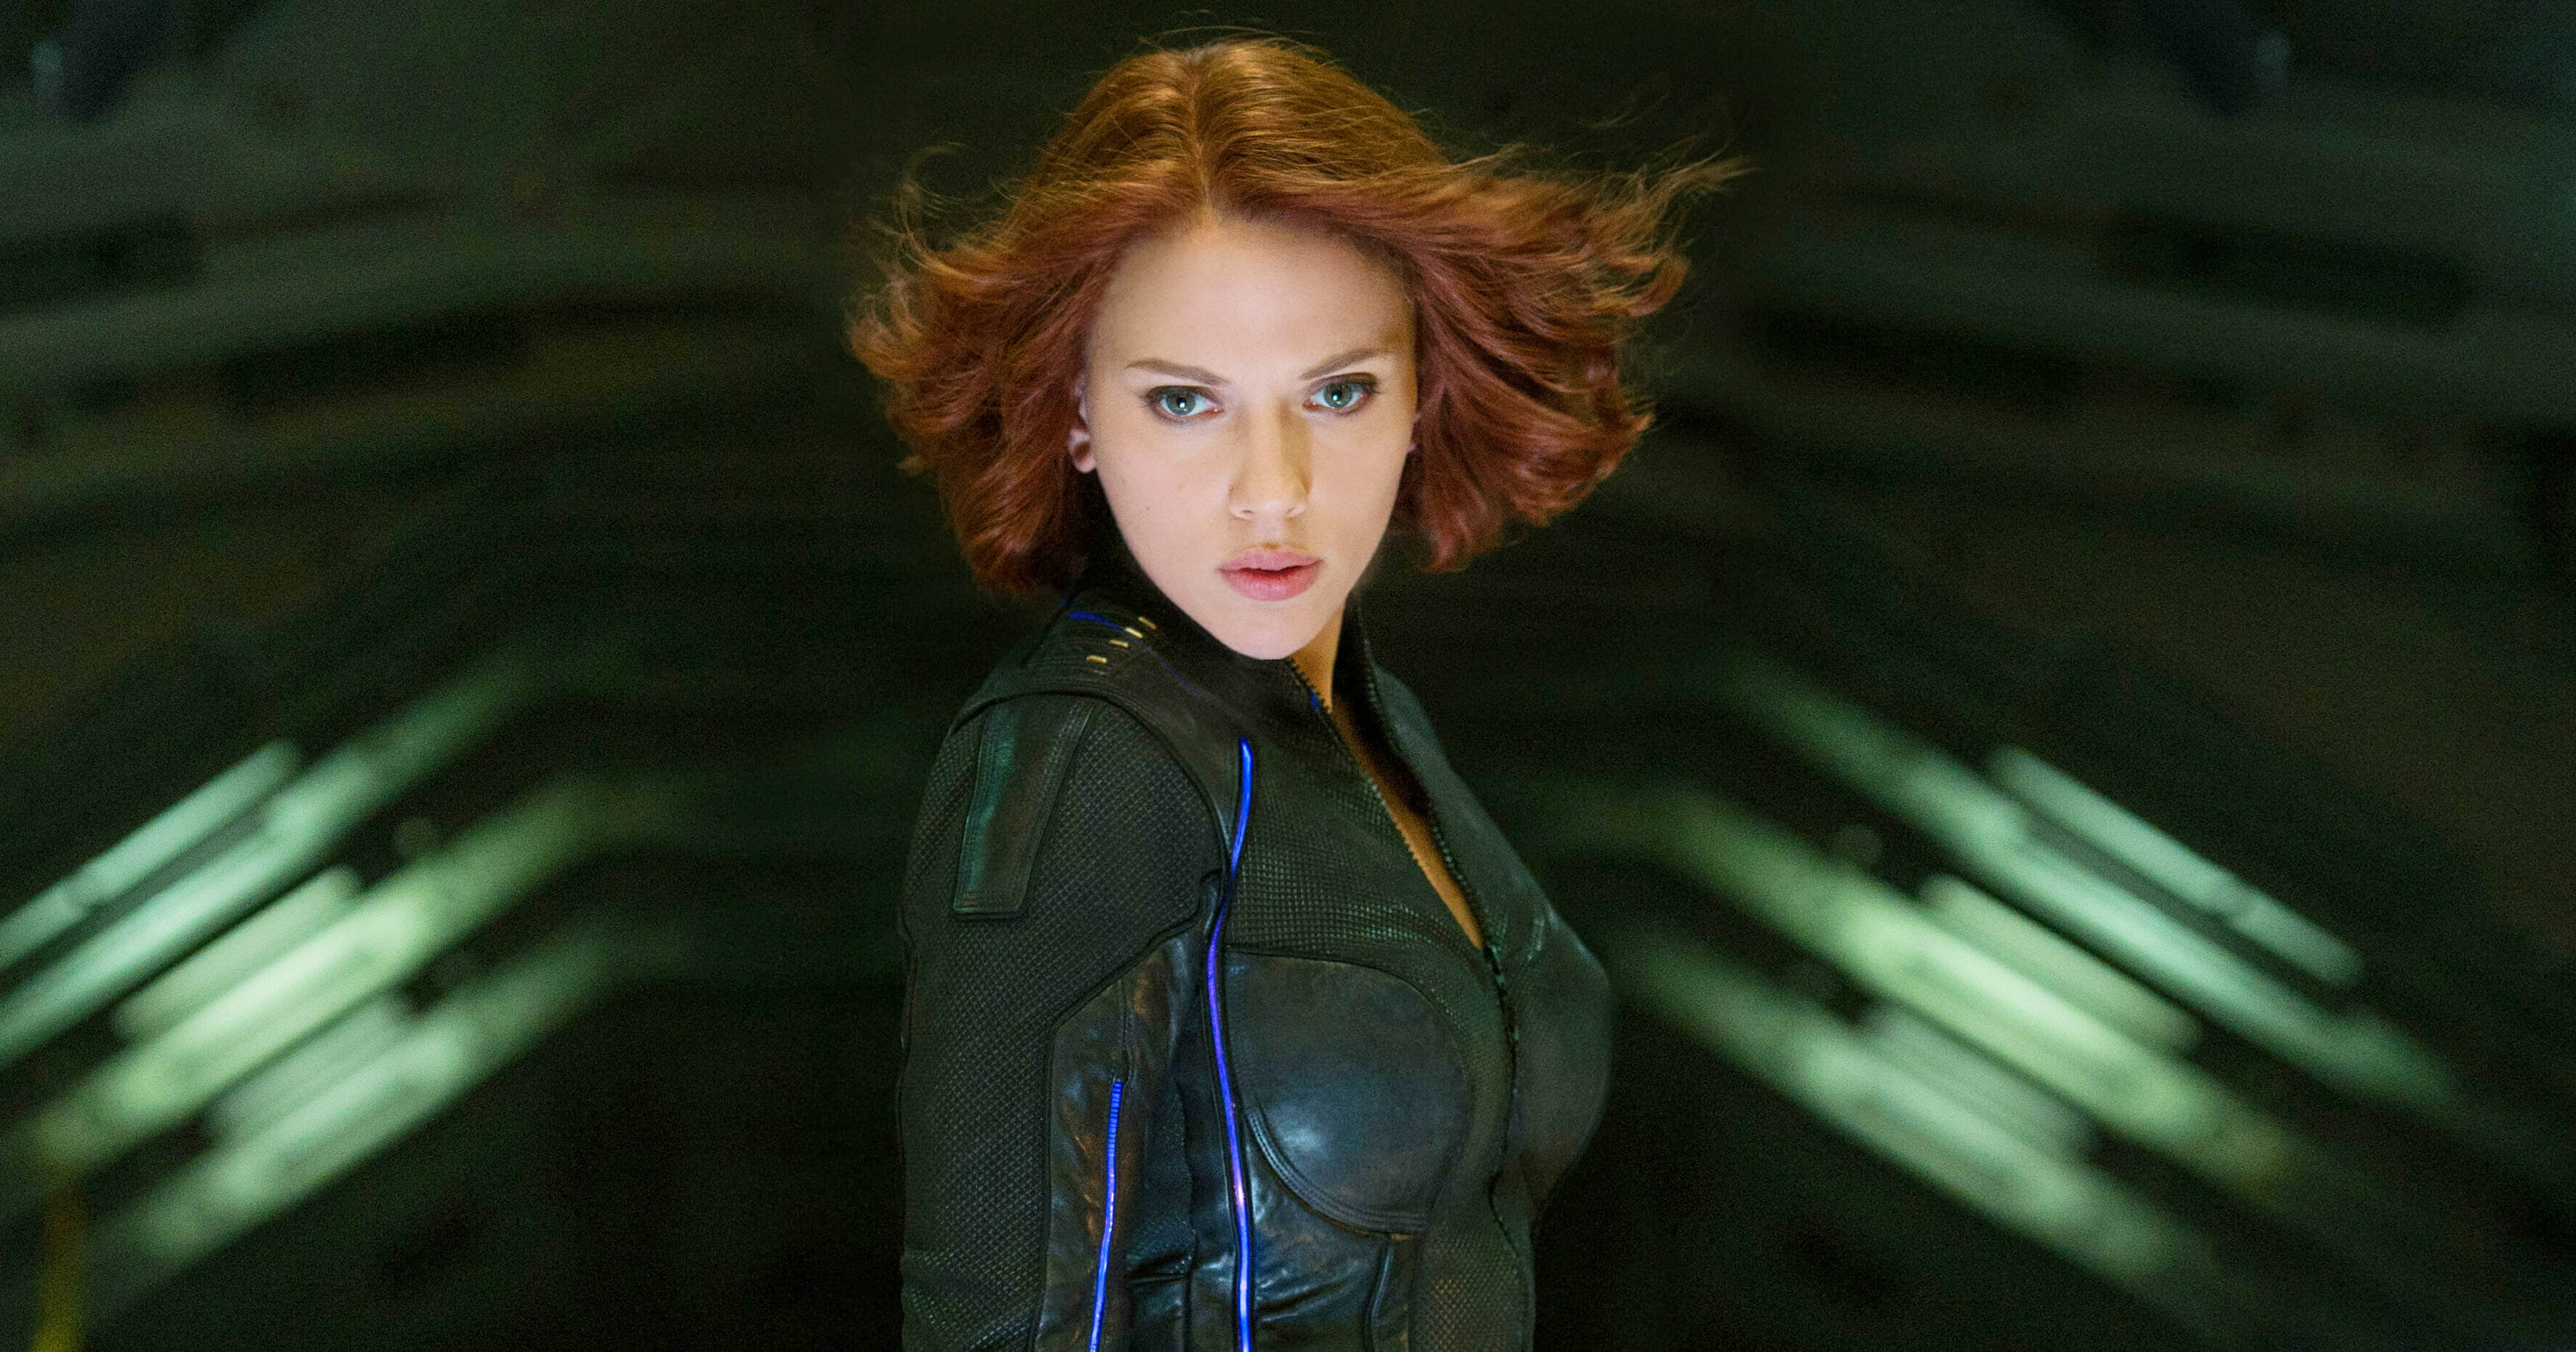 black-widow-movie-e1524141662909.jpg